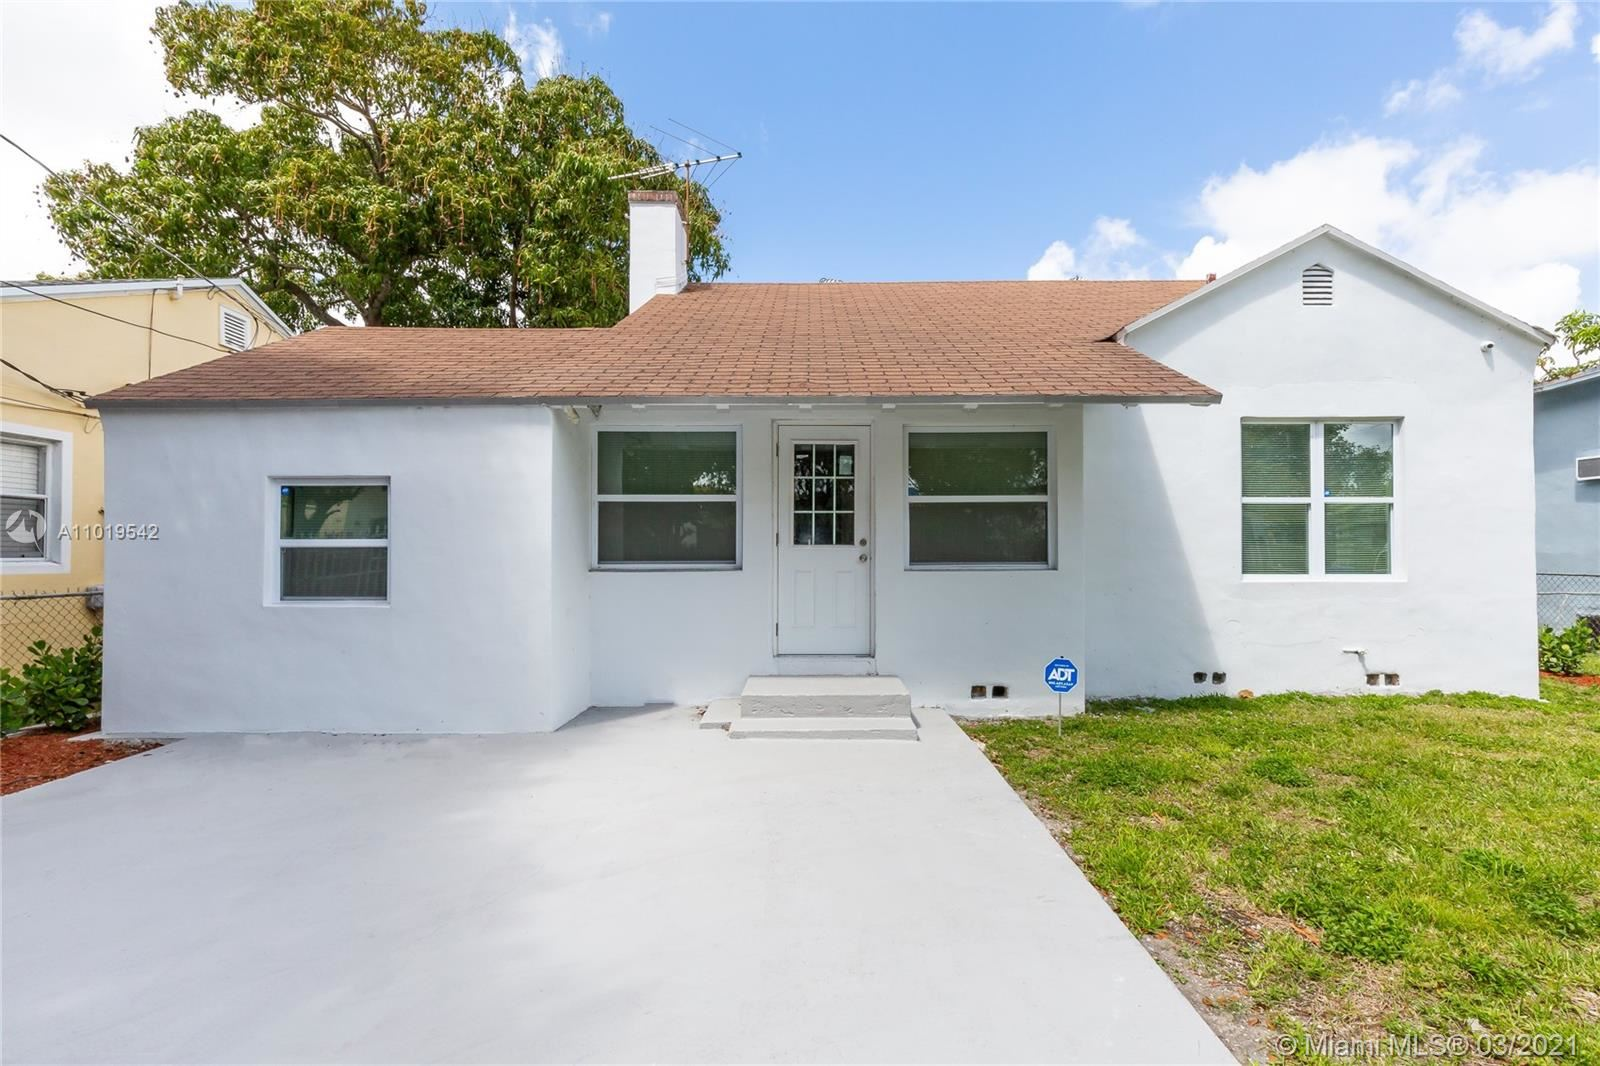 529 NW 42nd St, Miami, FL 33127 - #: A11019542